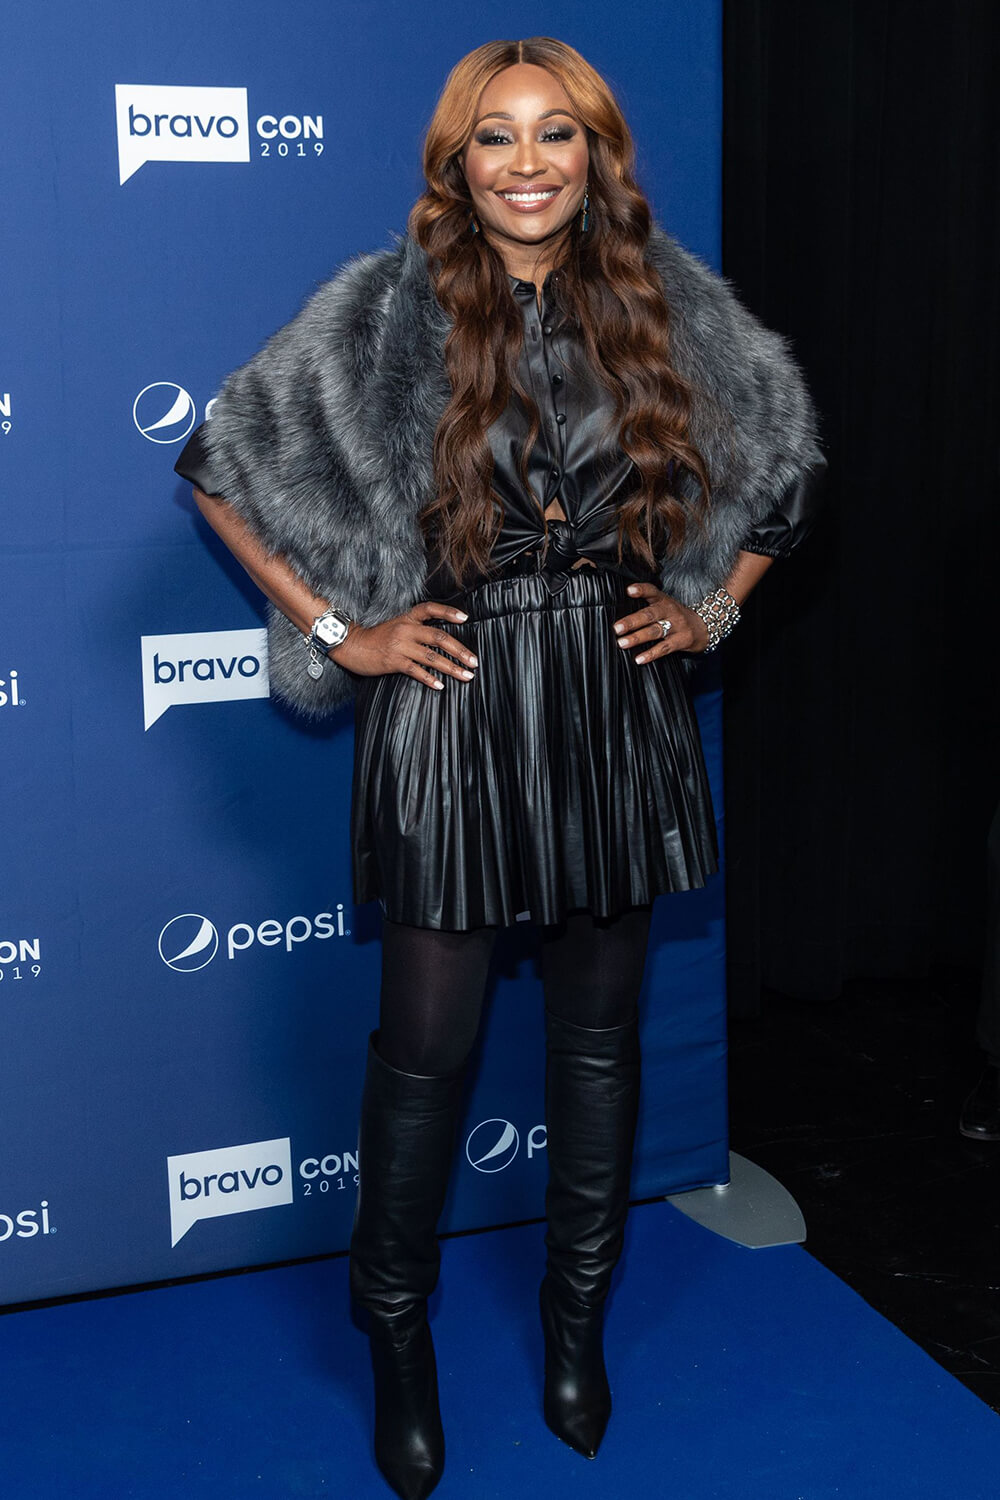 Cynthia Bailey attends Watch What Happens Live with Andy Cohen' TV show